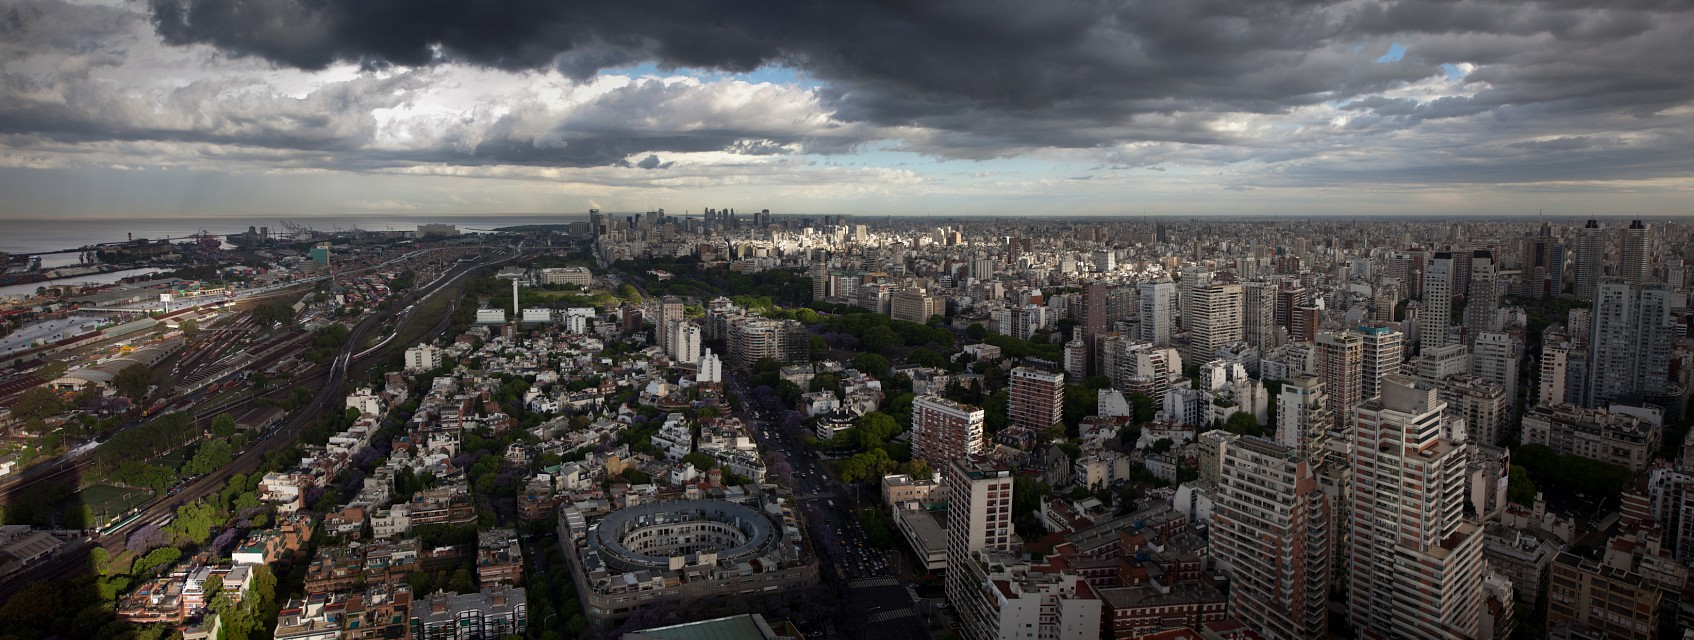 Buenos Aires Skyline in Color   111109-2-jikatu - Buenos Aires